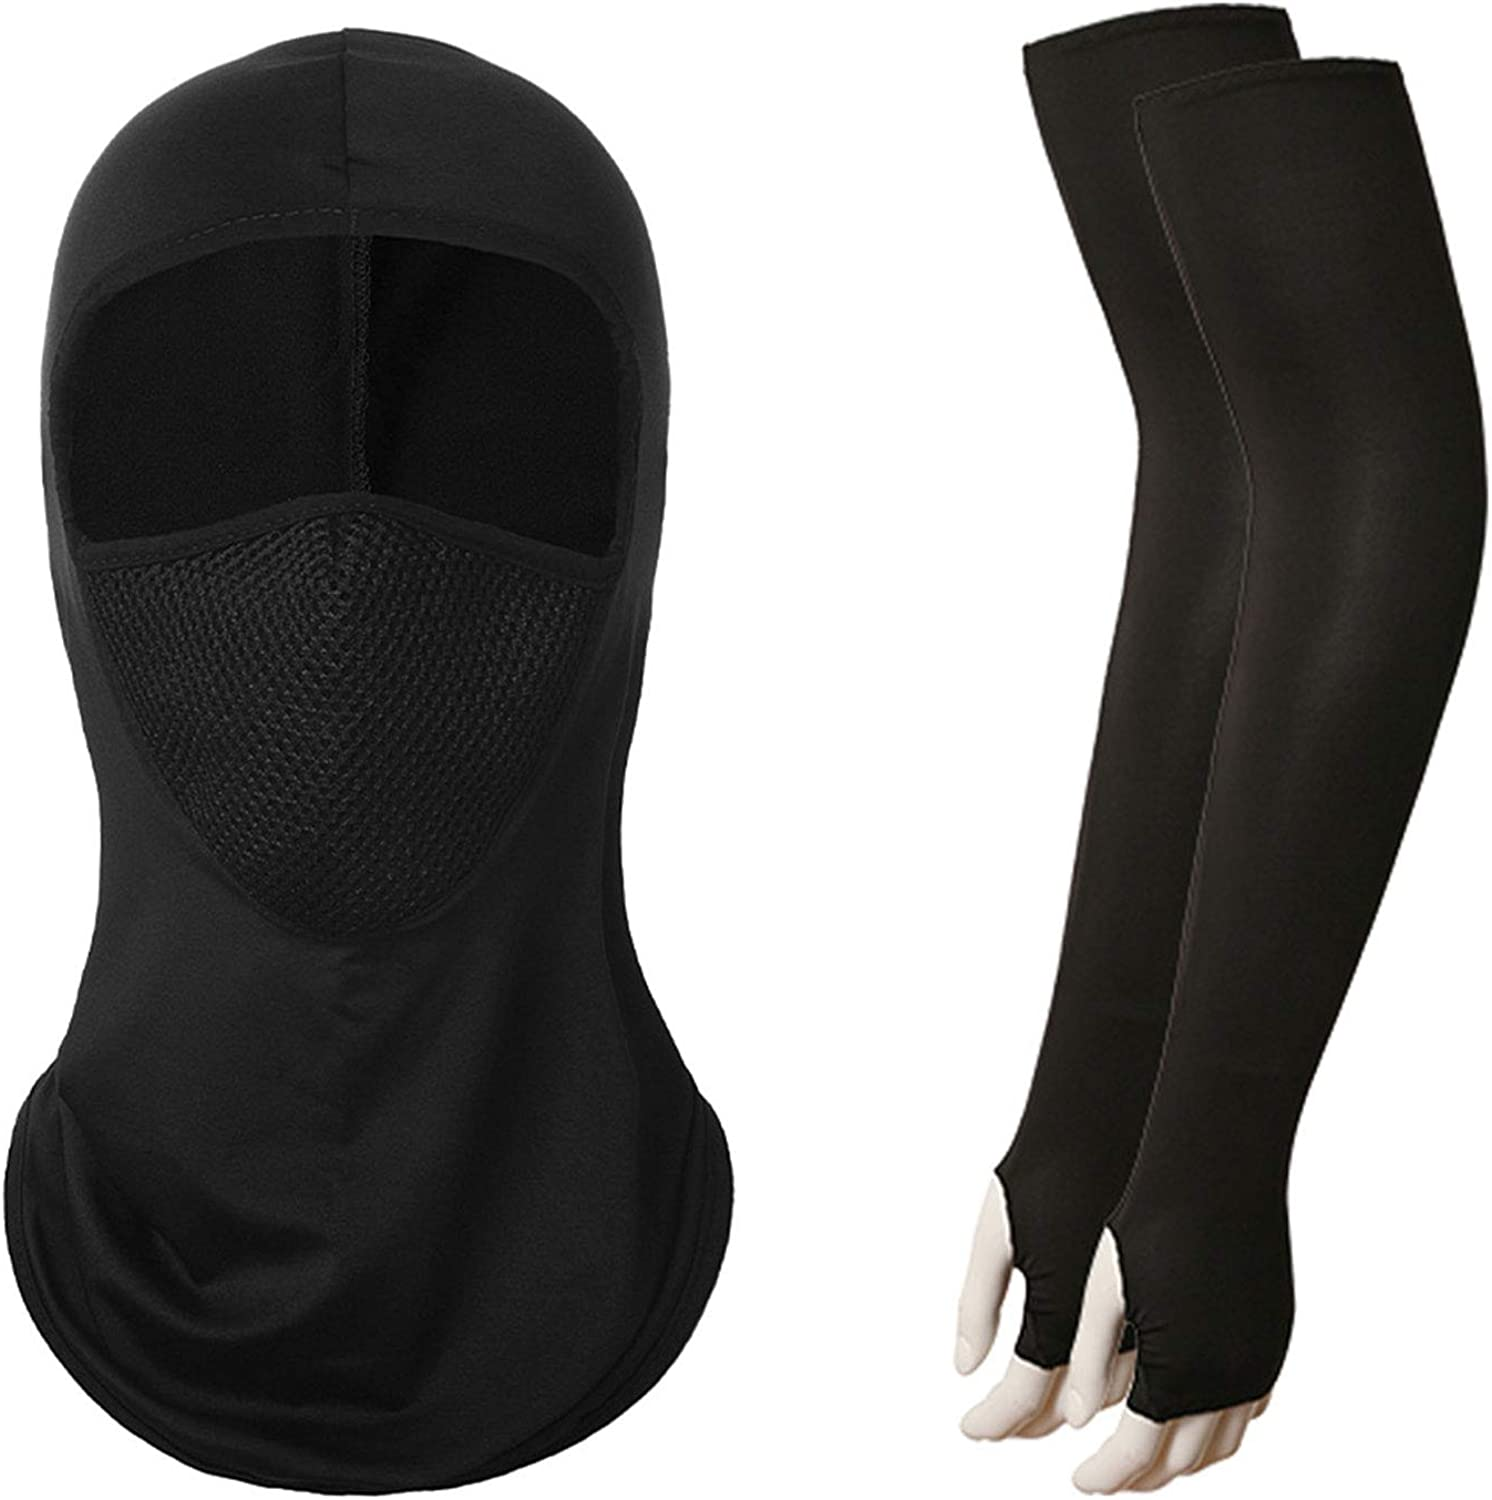 Guojanfon Summer Balaclava UV Protection Full Face Cover and Cooling Arm Sleeves